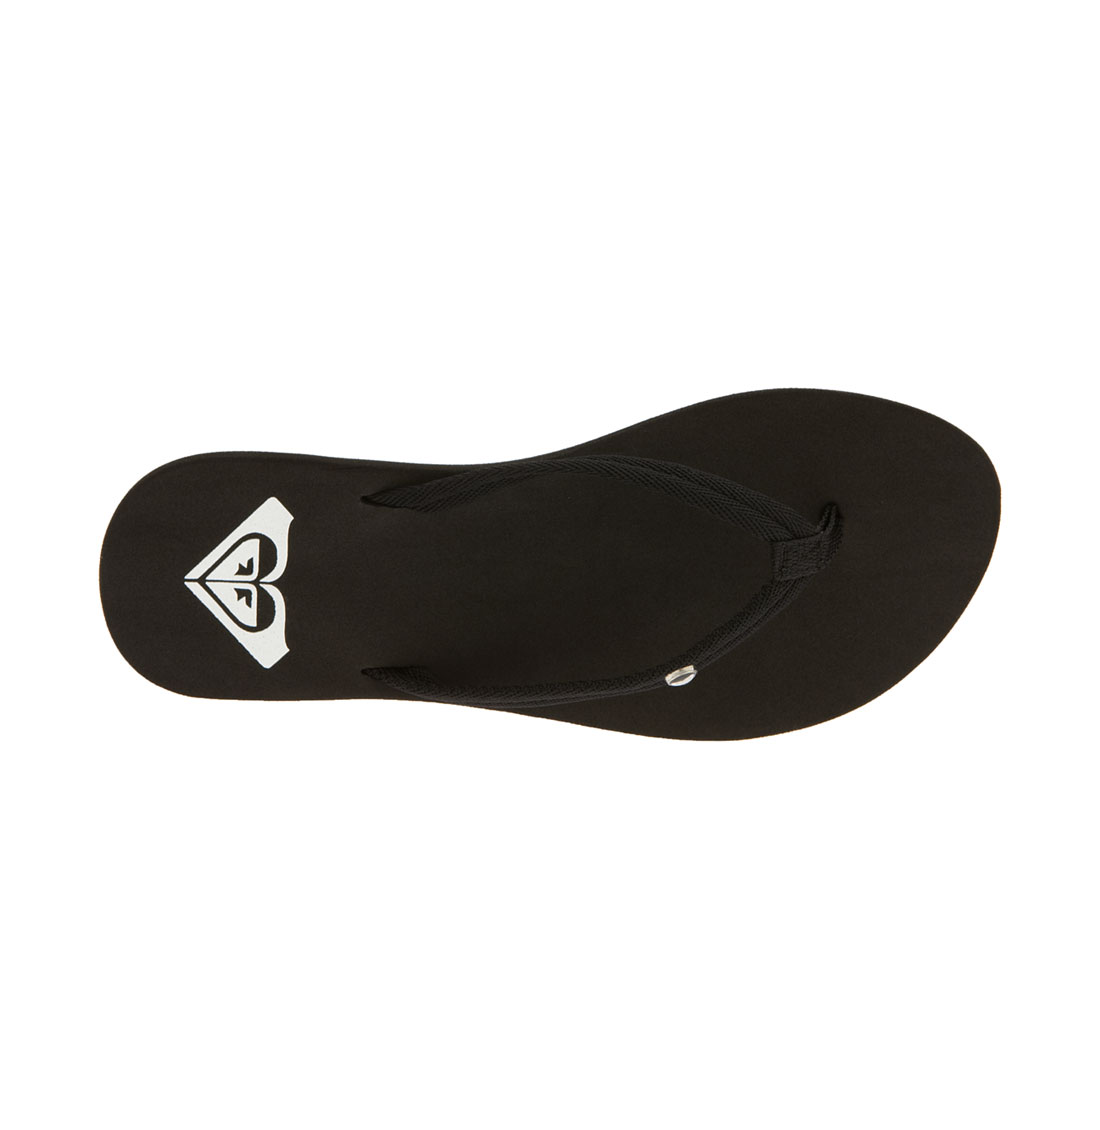 Roxy Patty Flip Flop In Black Lyst